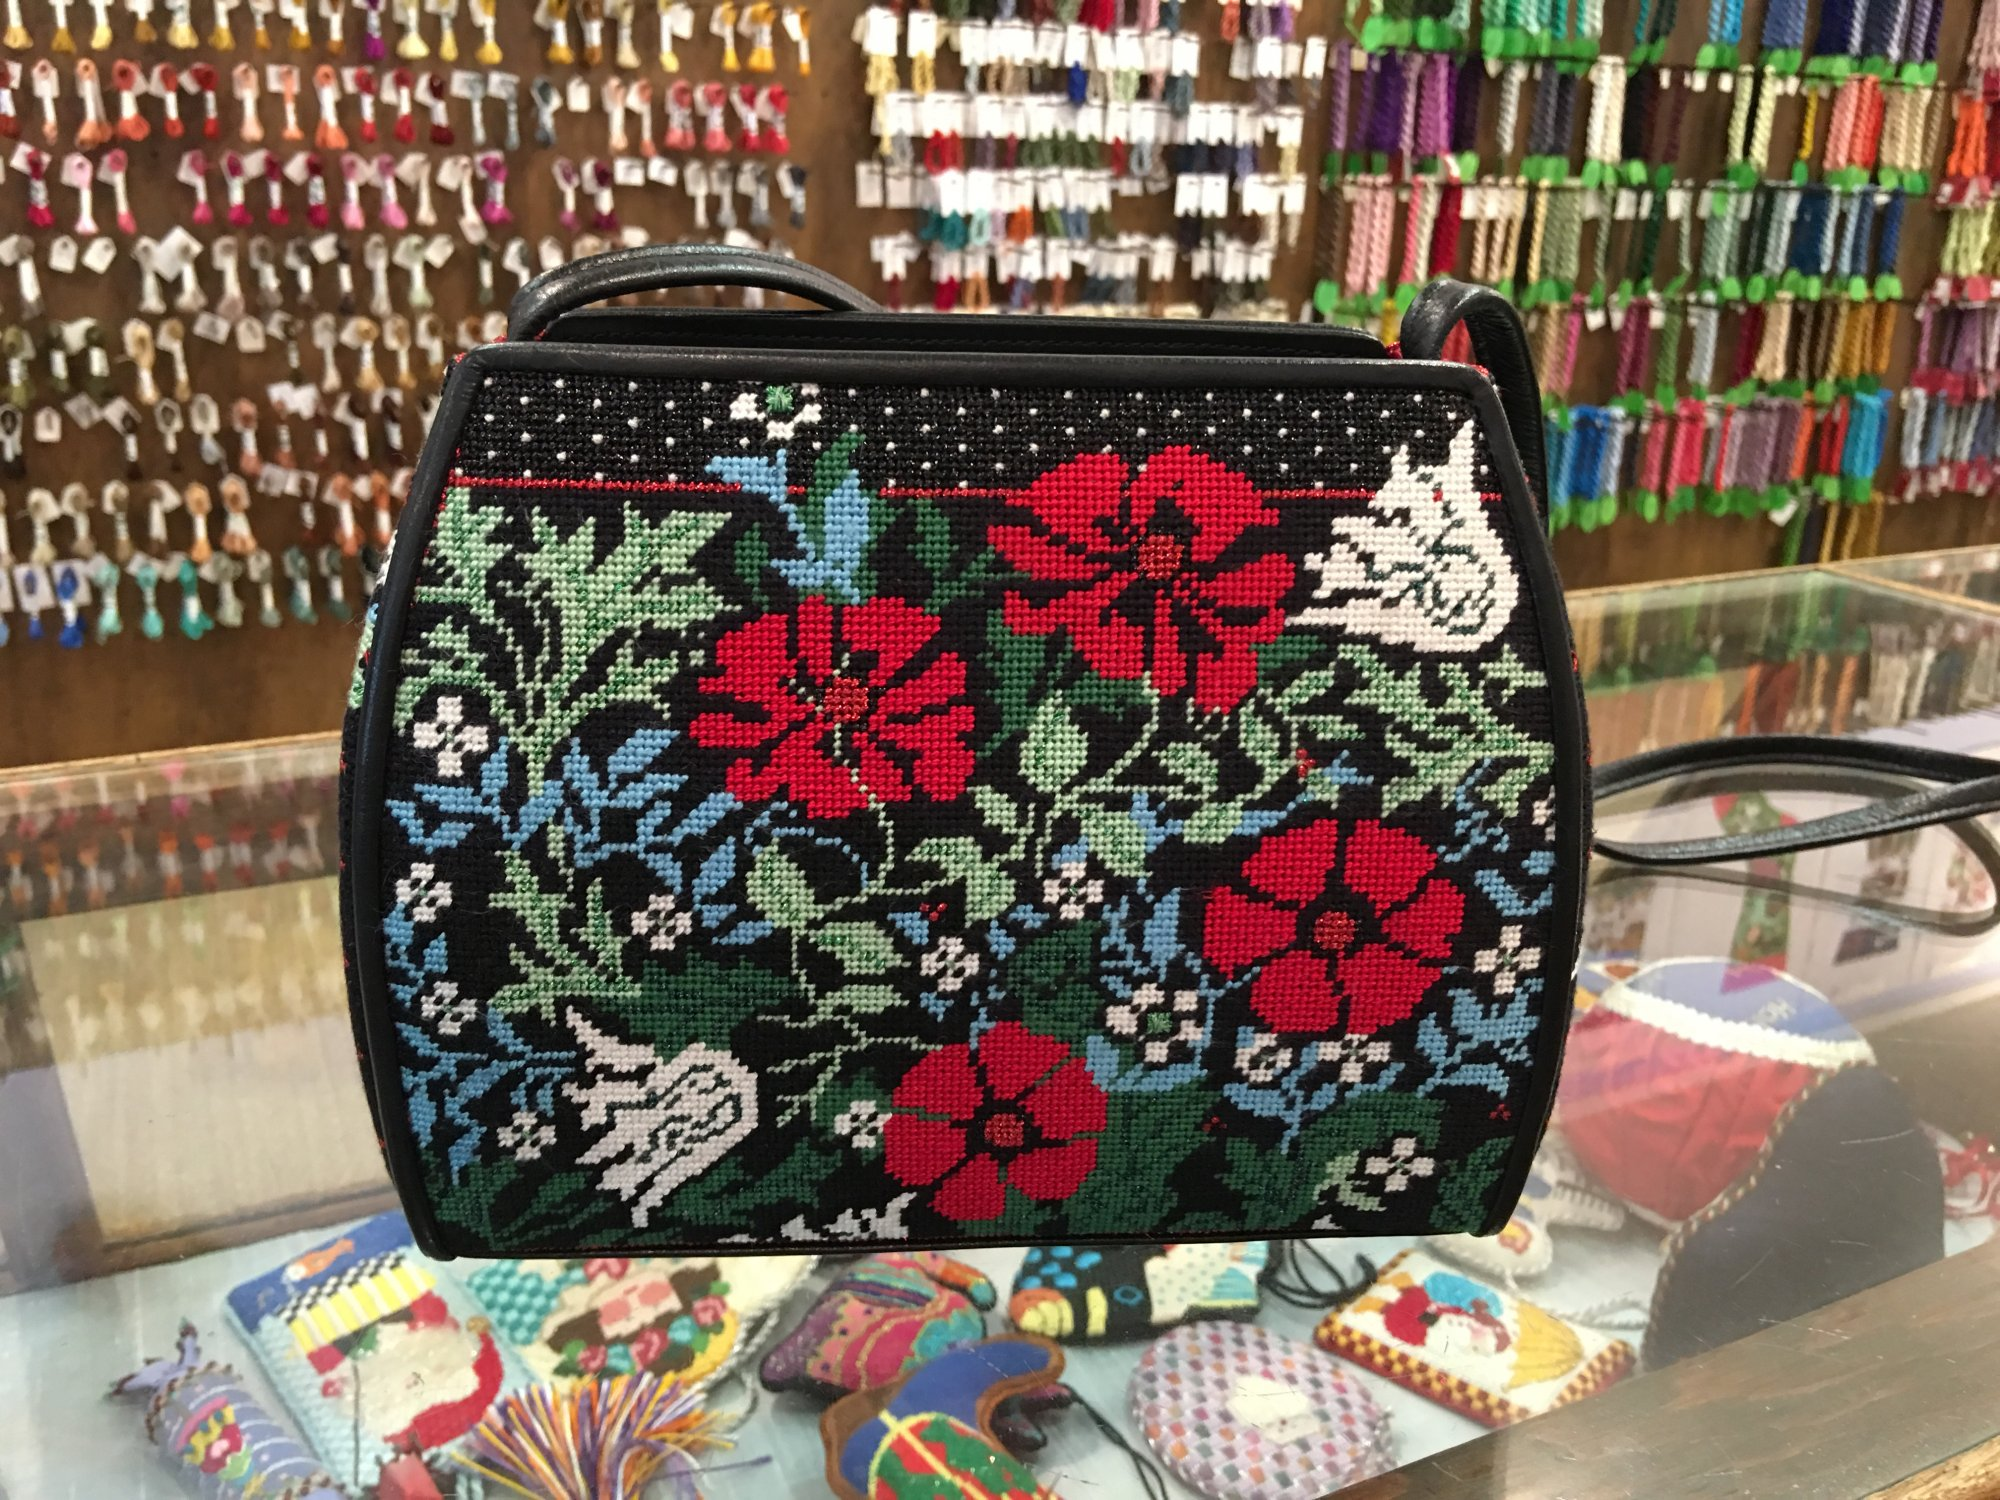 Elegant Whimsy & Grace Purse - inspired by William Morris Compton